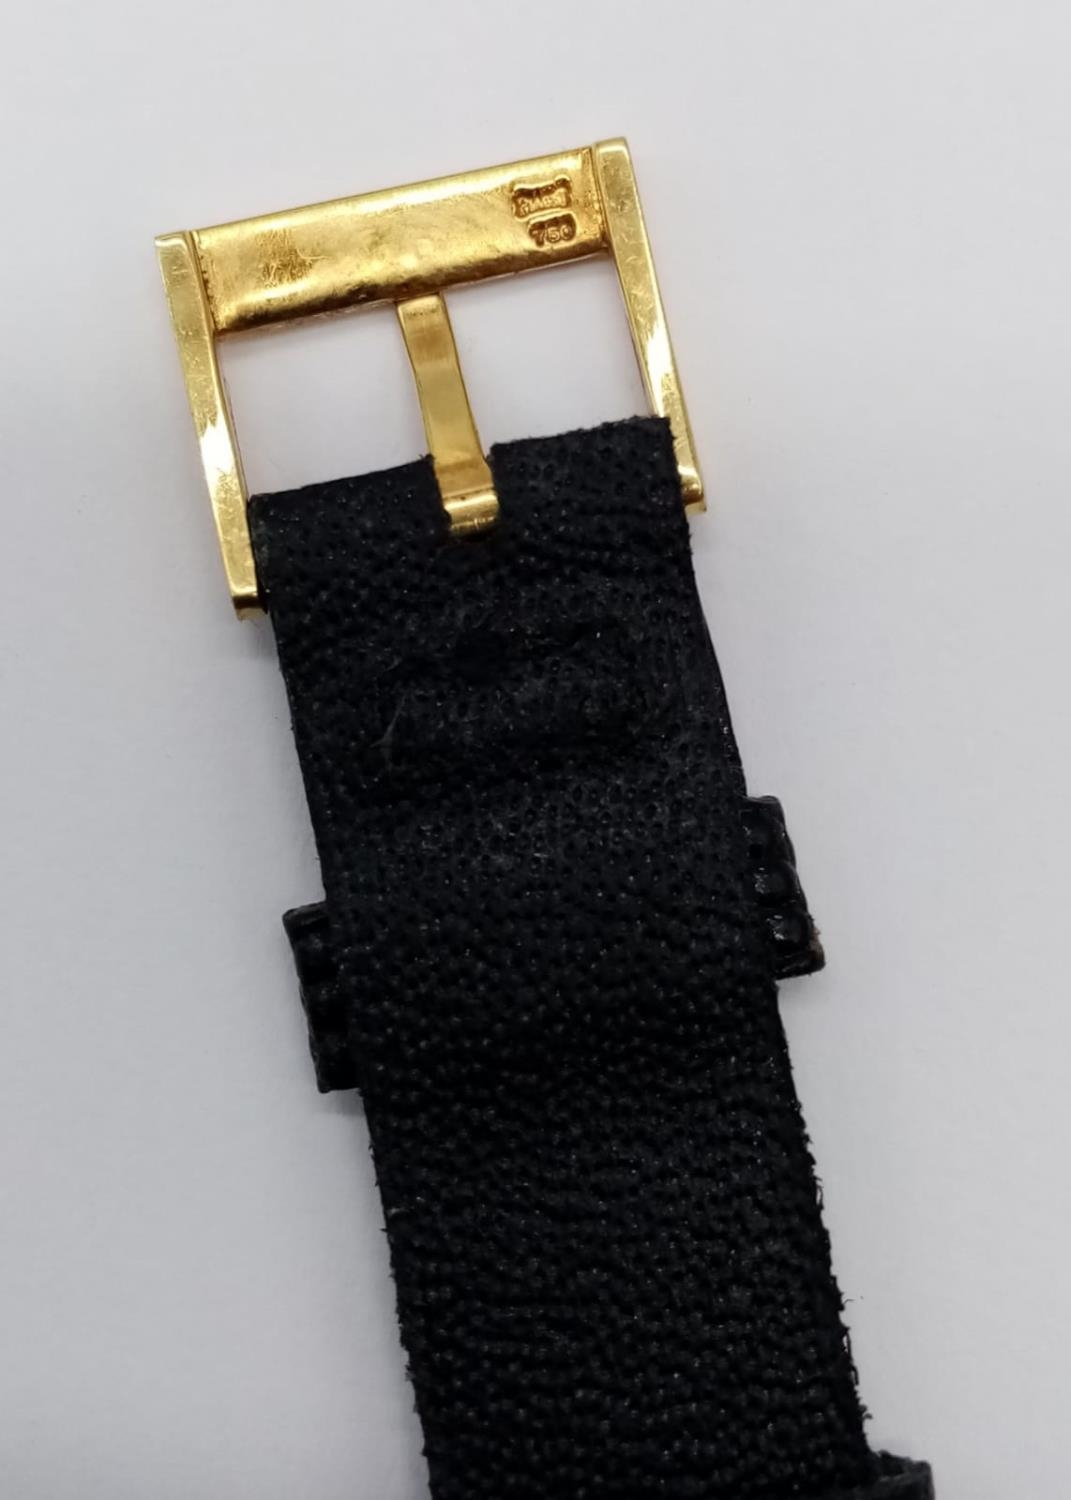 Vintage Plaget 18ct gold ladies watch with square face (22mm) and leather strap - Image 9 of 10